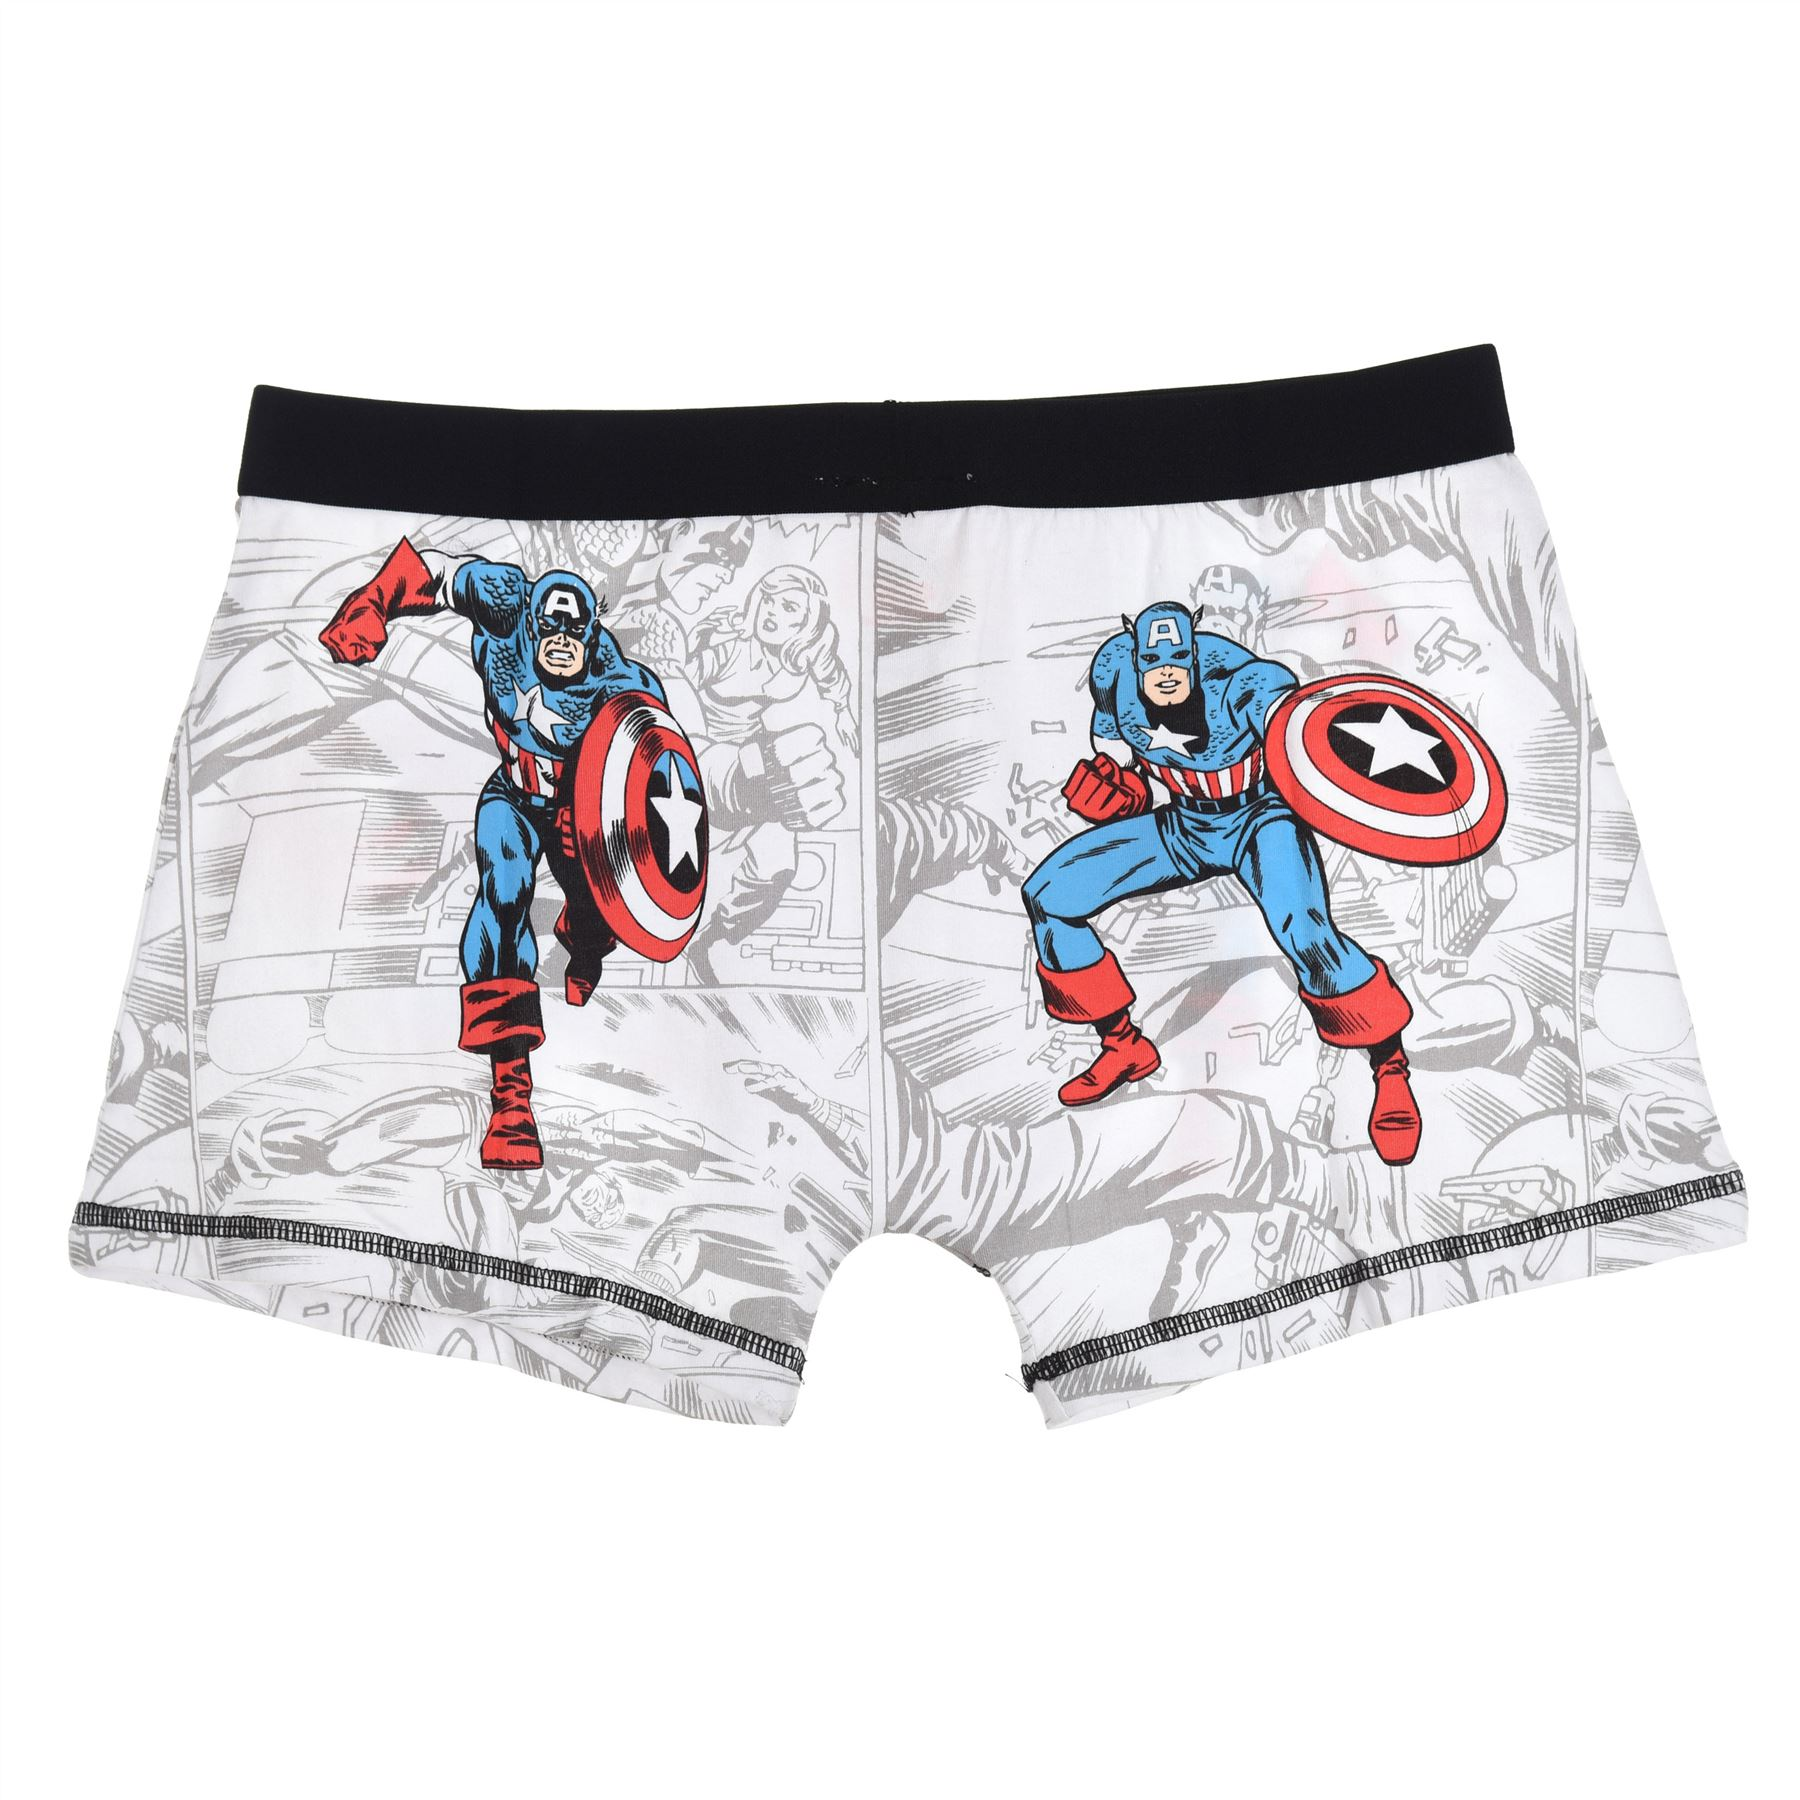 Mens-Official-Character-Trunks-Boxer-Shorts-Boxers-Underwear-2-Pack-Size-S-XL thumbnail 21